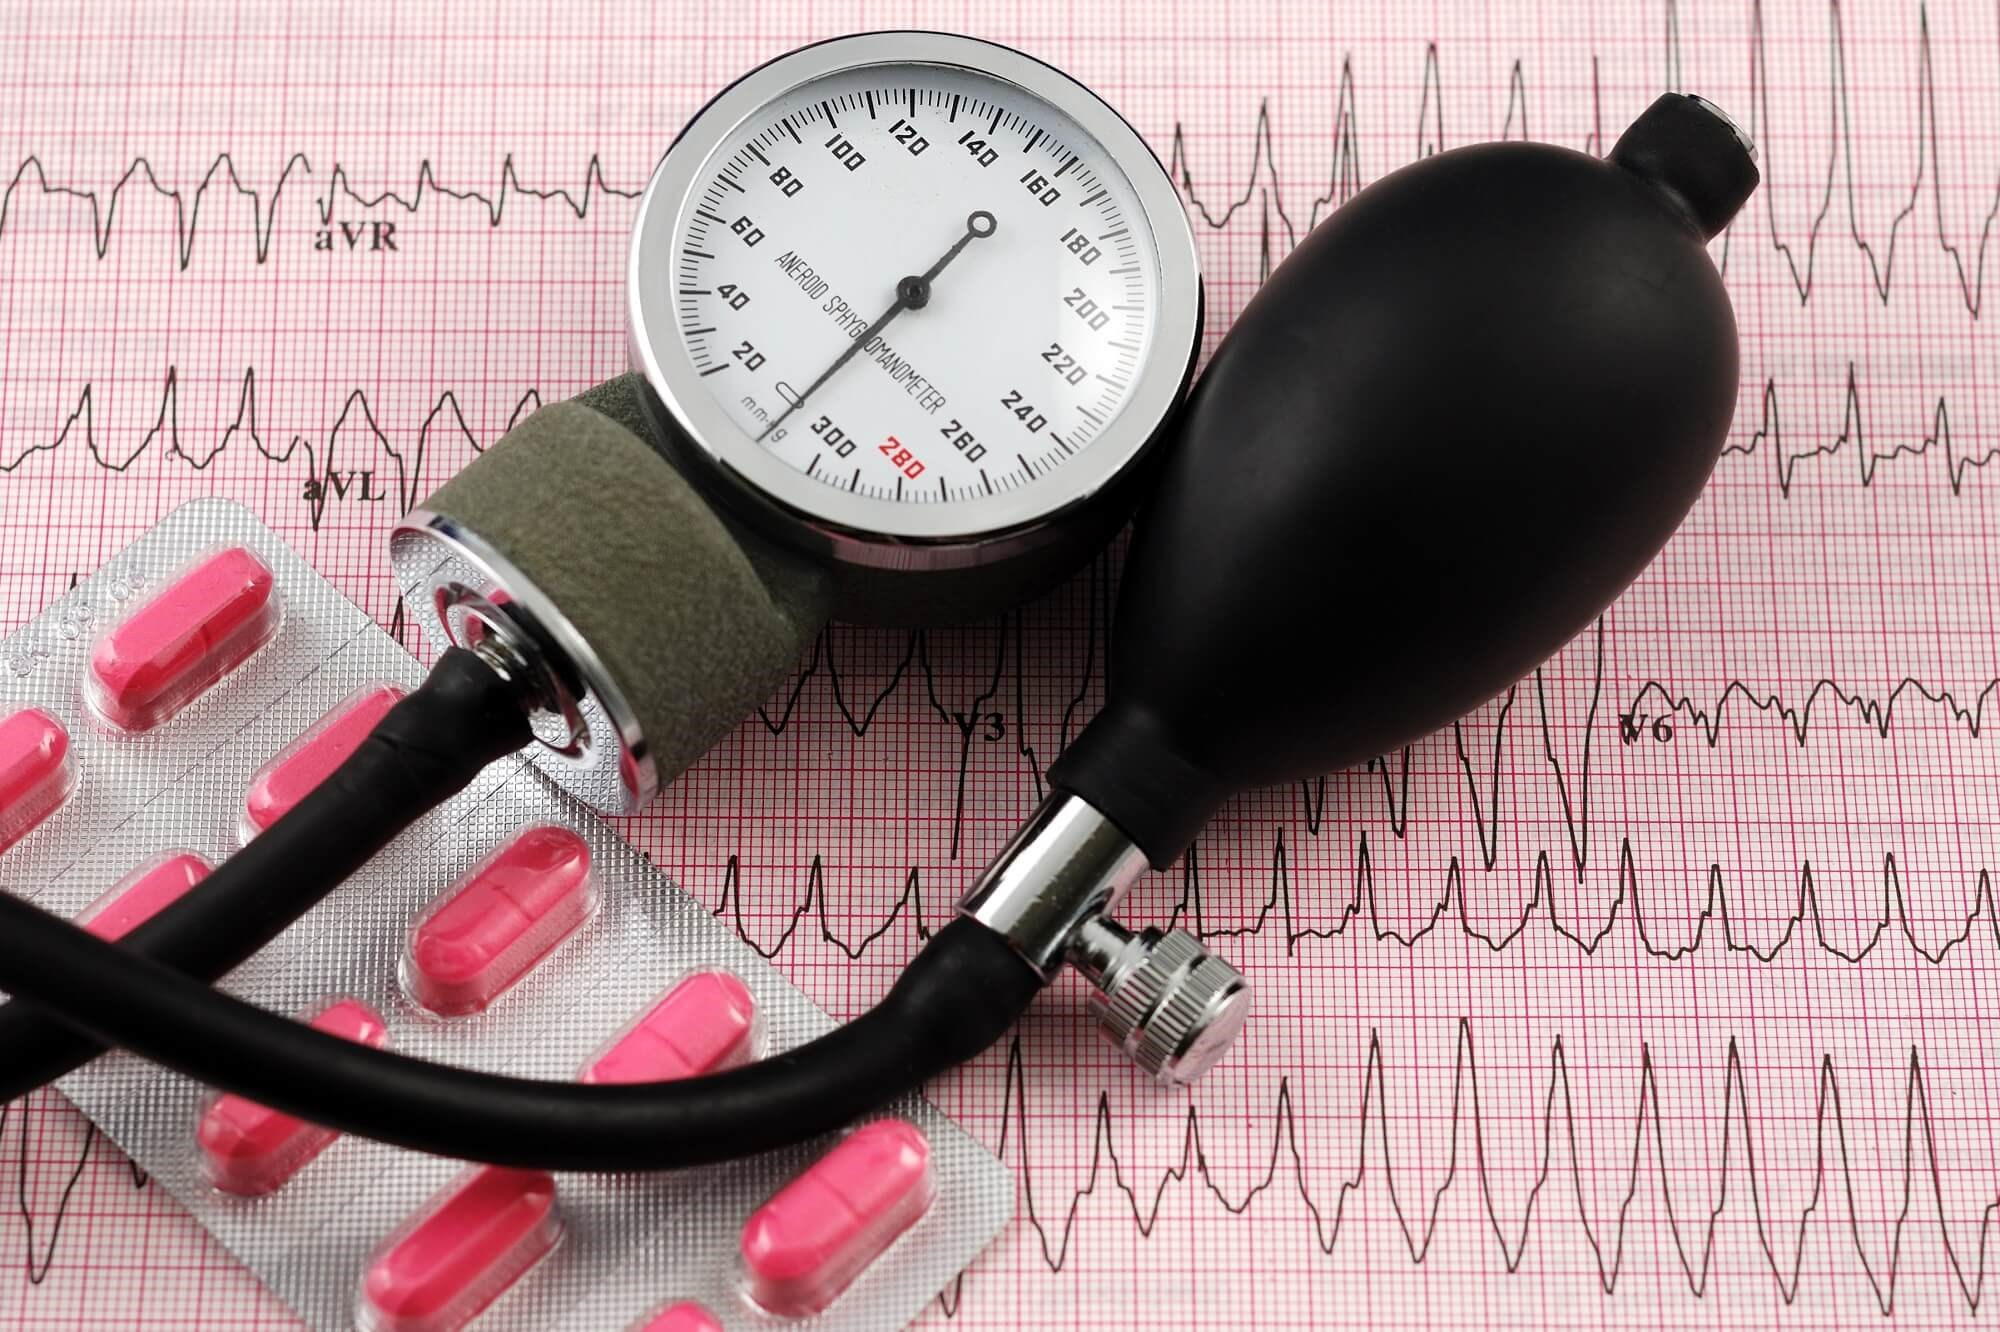 Does Antihypertensive Therapy Reduce CVD Risk in Low-Risk Patients With Mild Hypertension?